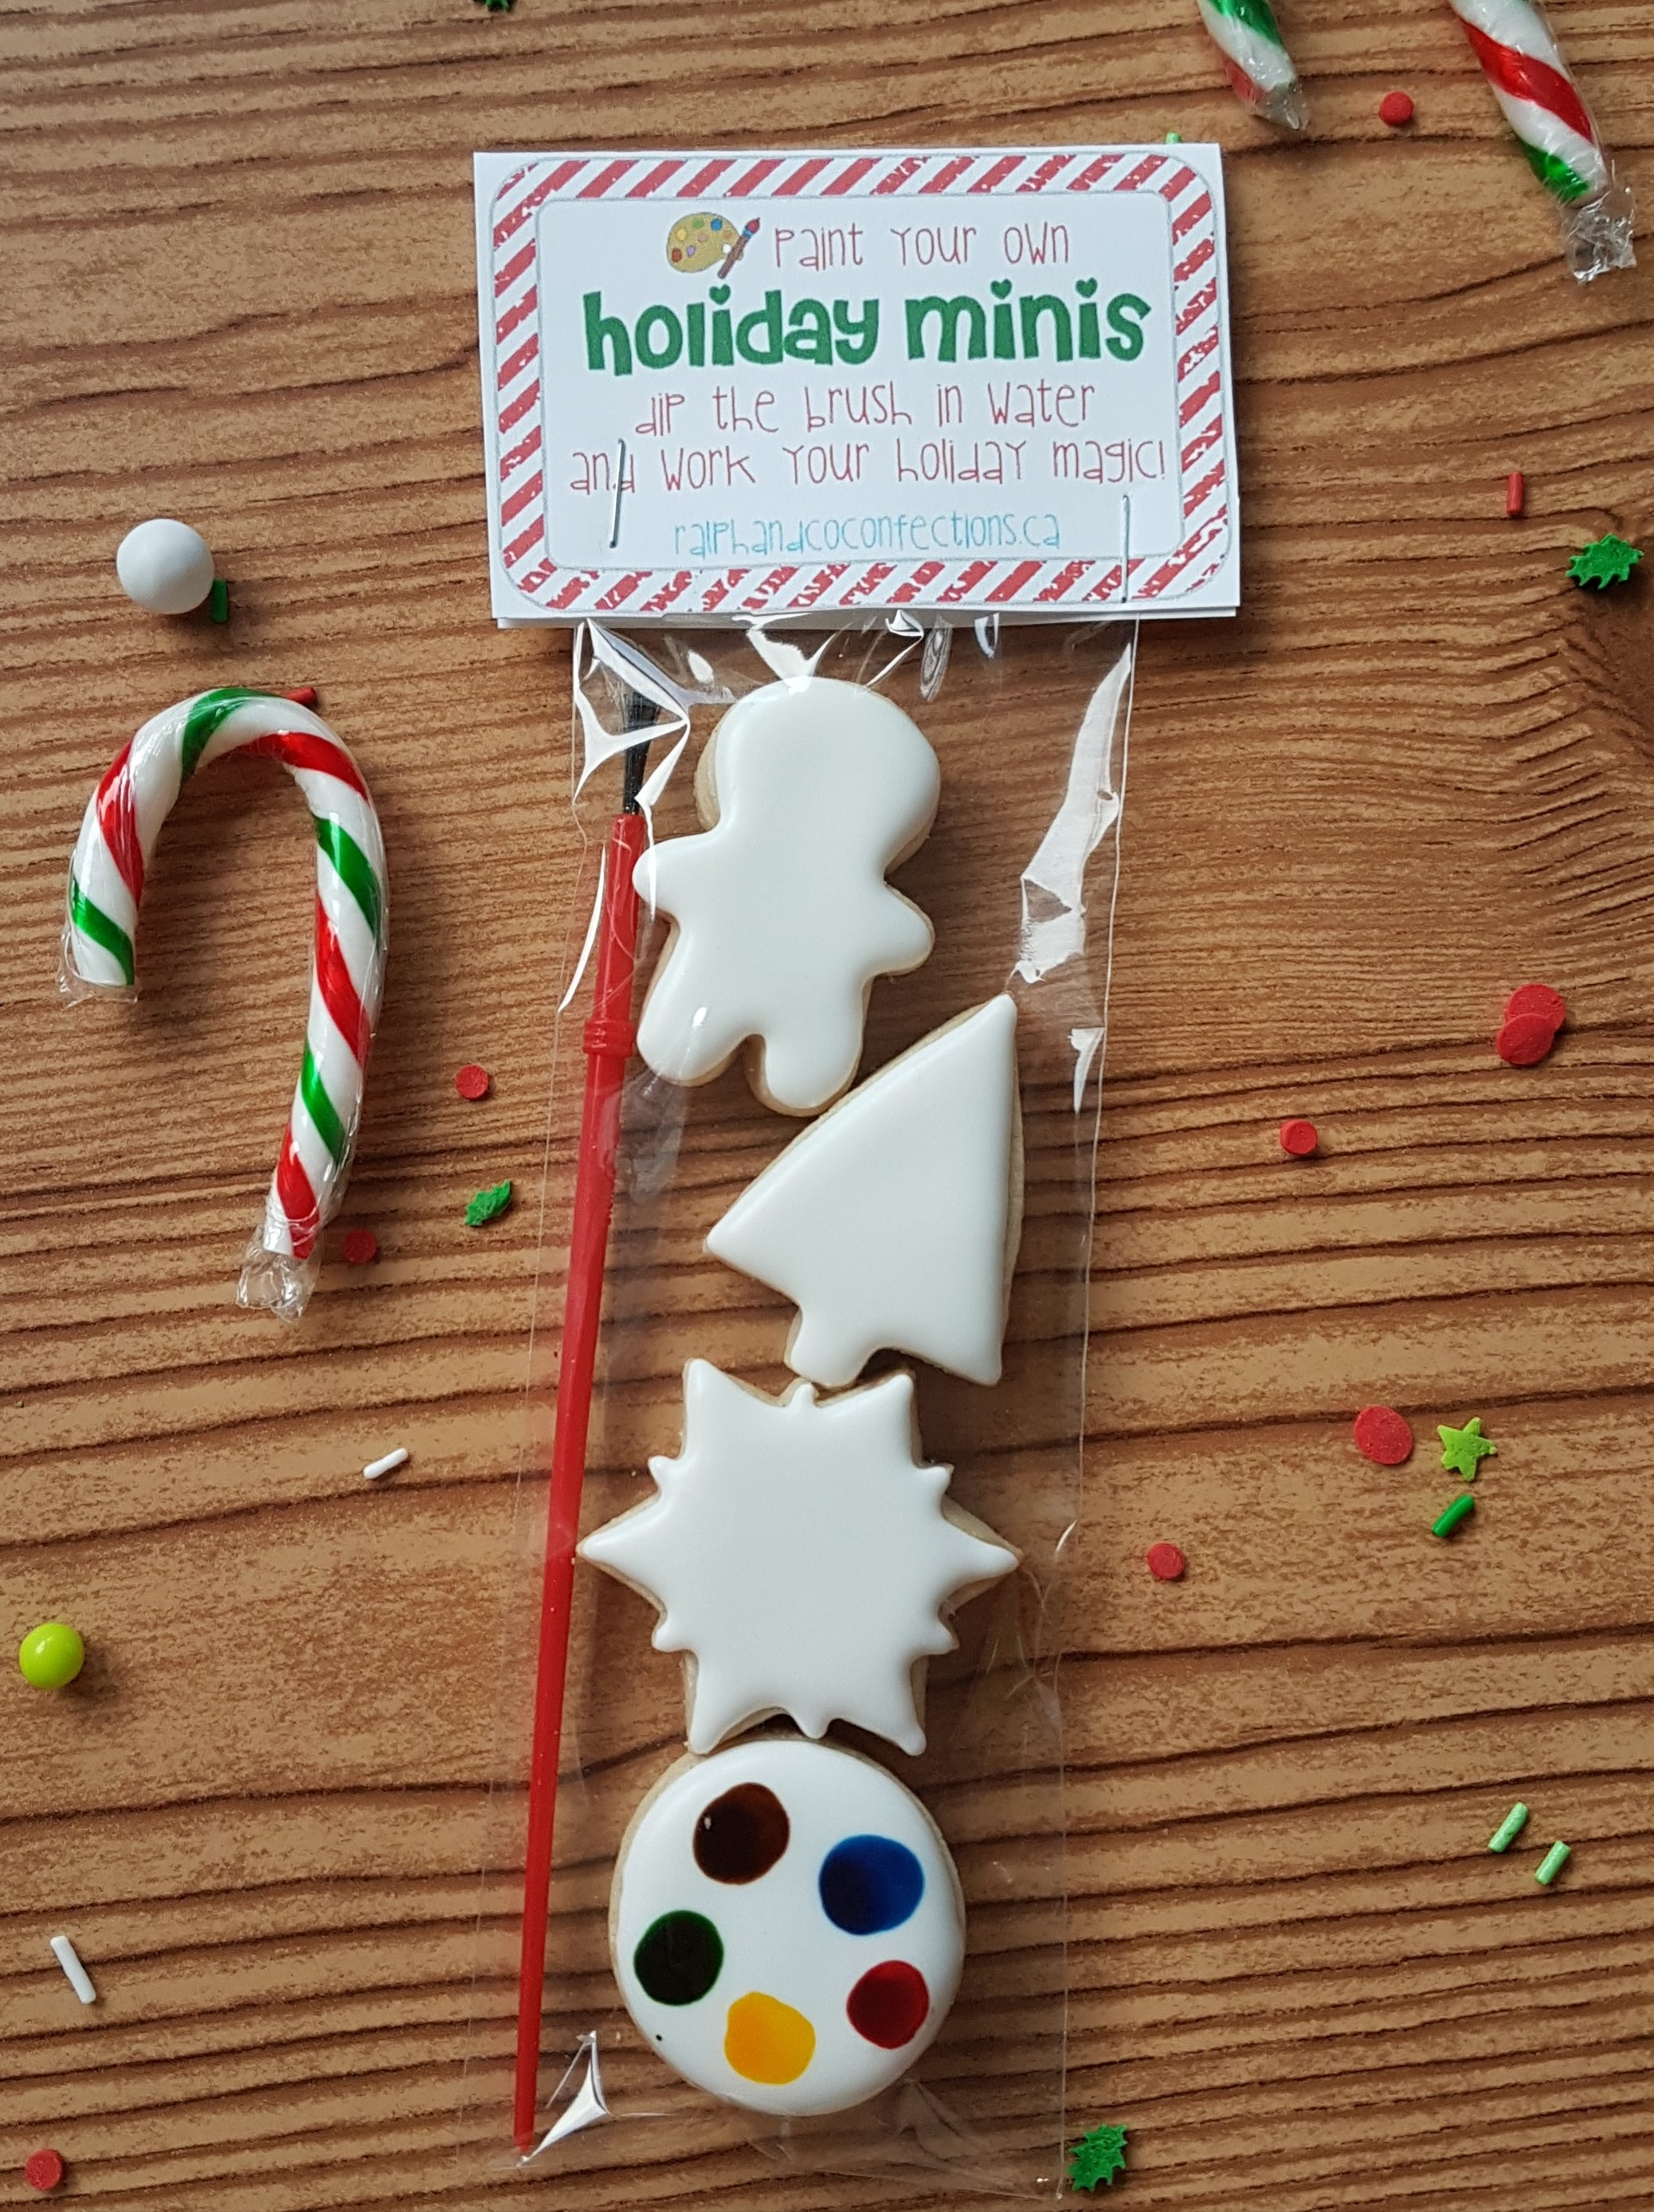 Paint-Your-Own Holiday Minis 00007